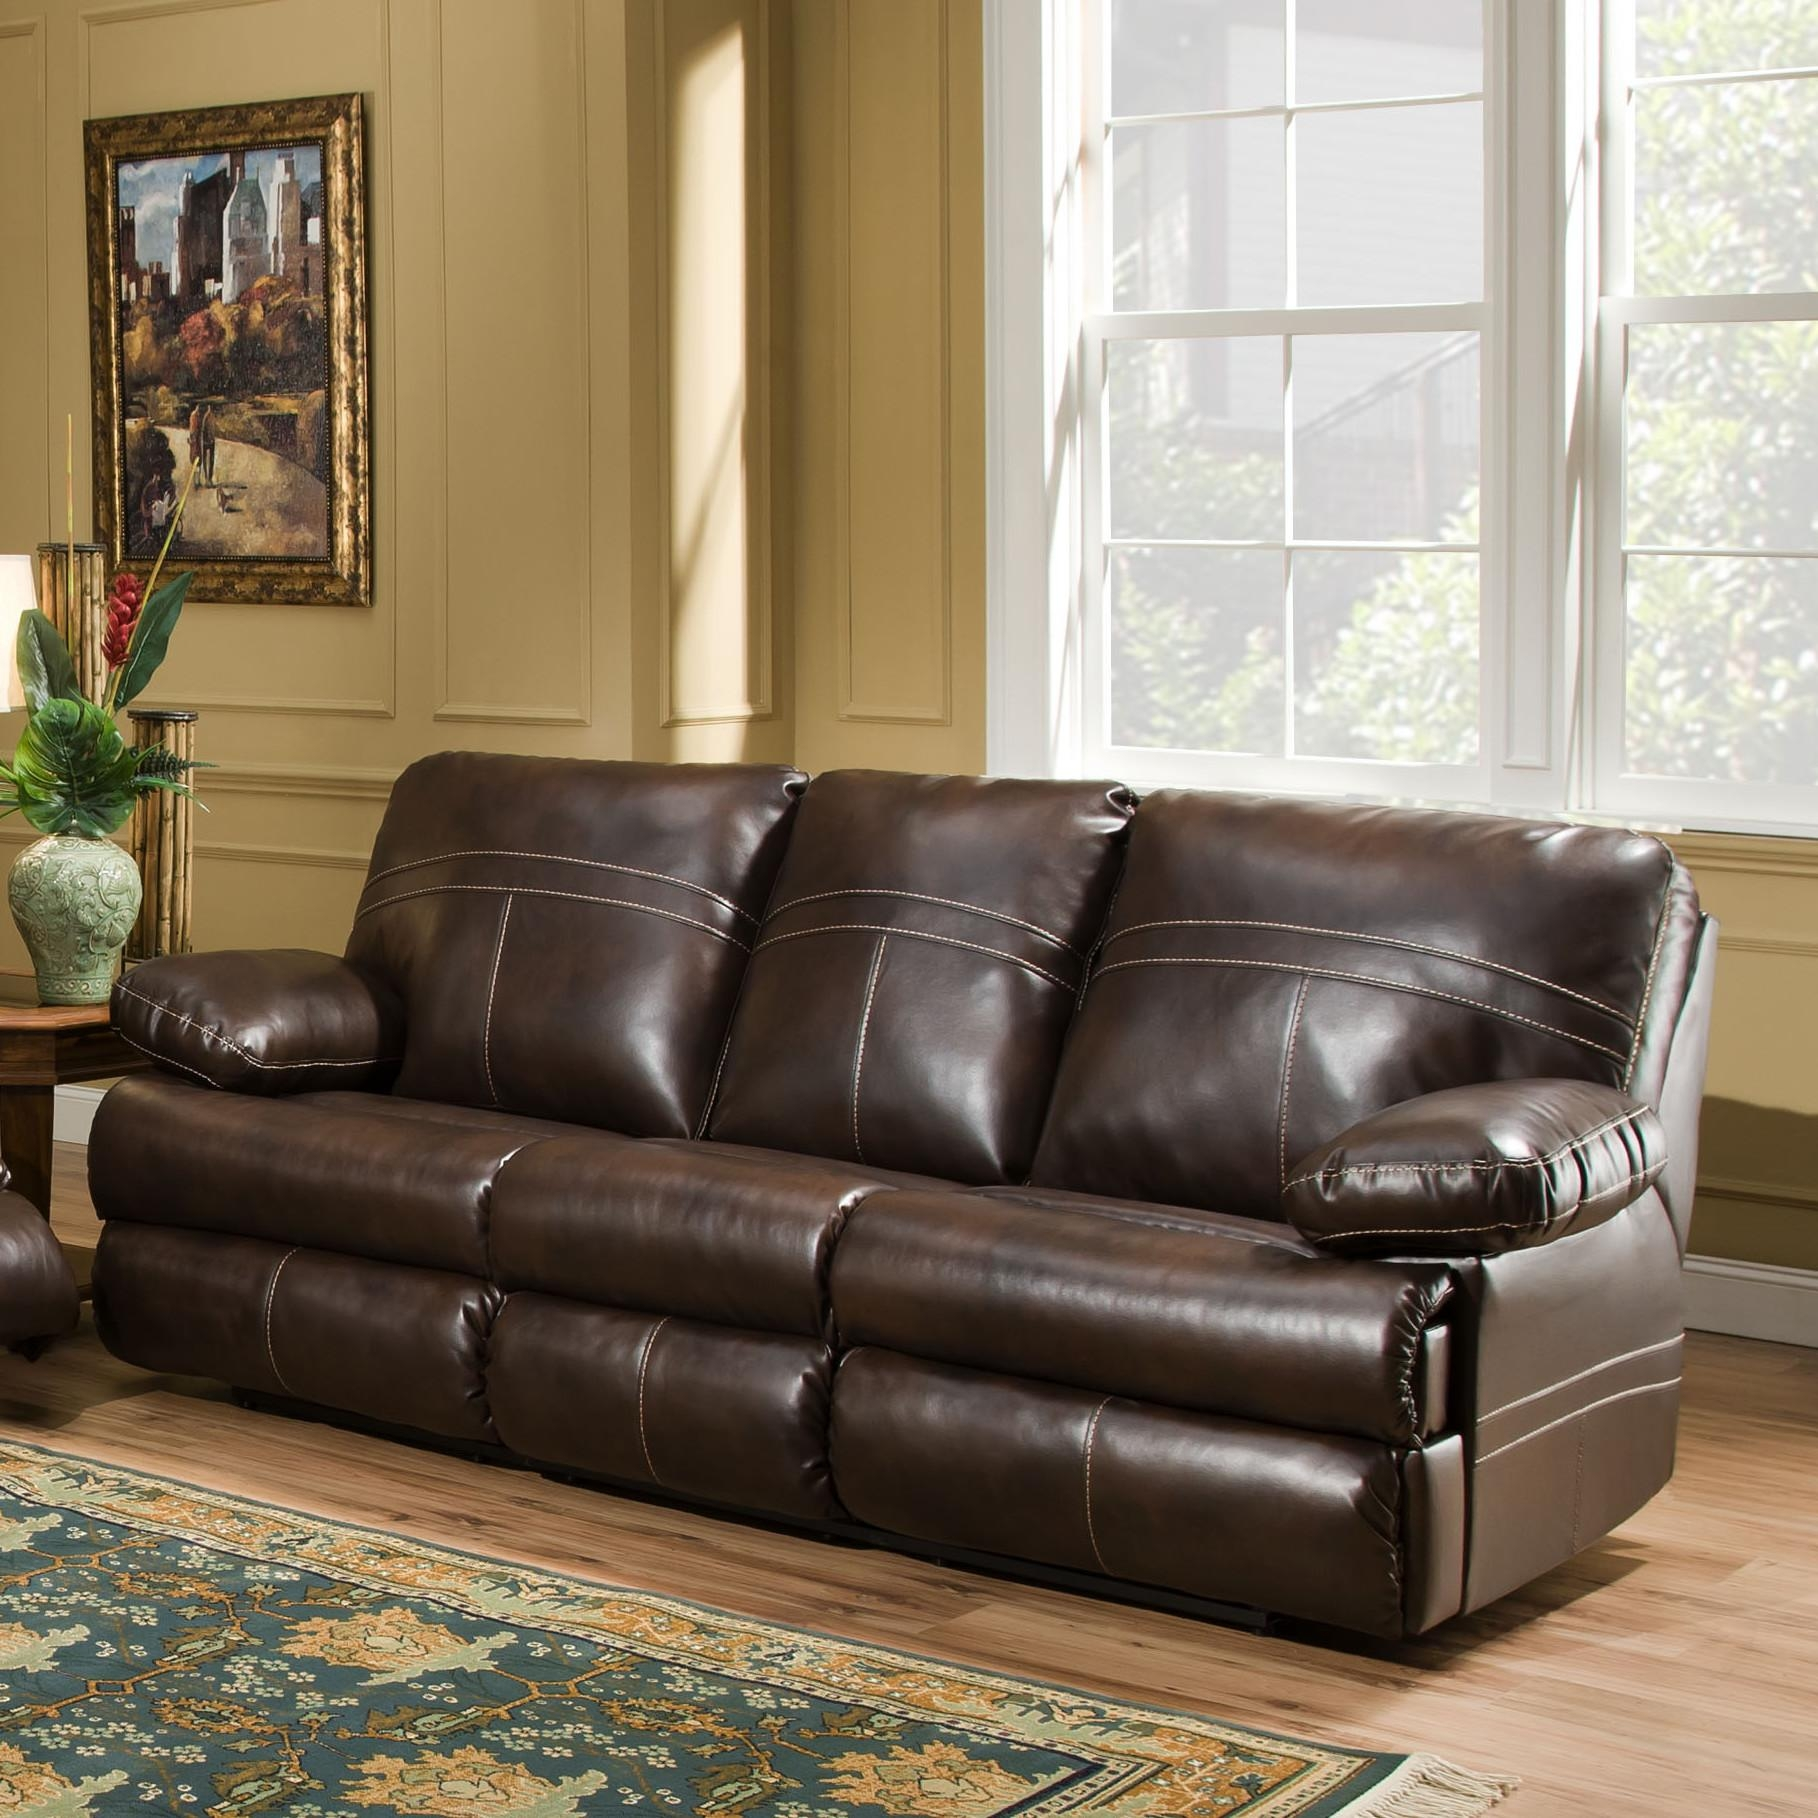 Furniture: Simmons Sectional For Comfortable Seating — Threestems In Simmons Sofas And Loveseats (View 8 of 20)